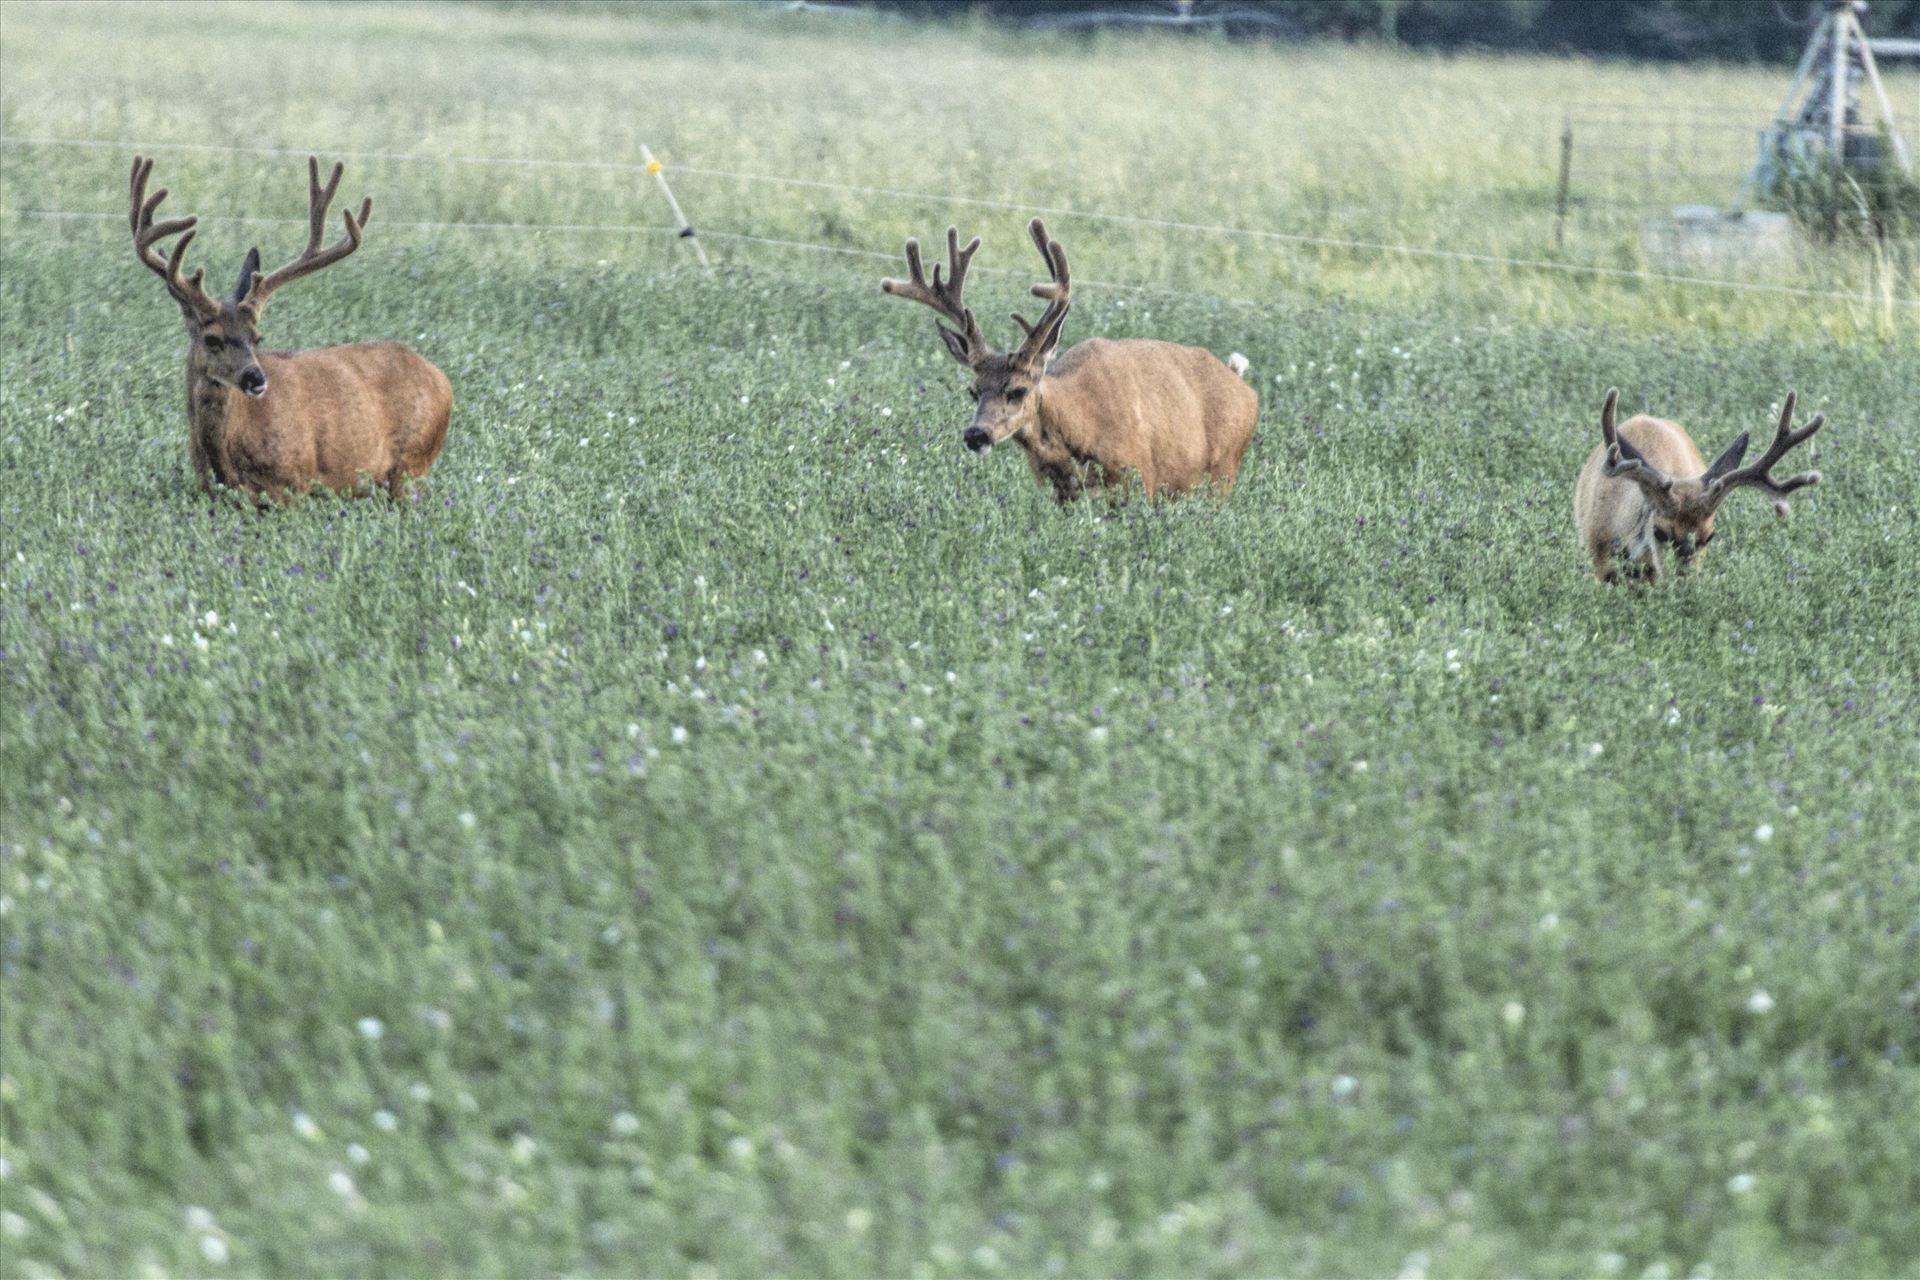 Farm Land BucksEvery chance these bucks get, they are standing in the middle of some of the best alfalfa in the world, feeding and growing.